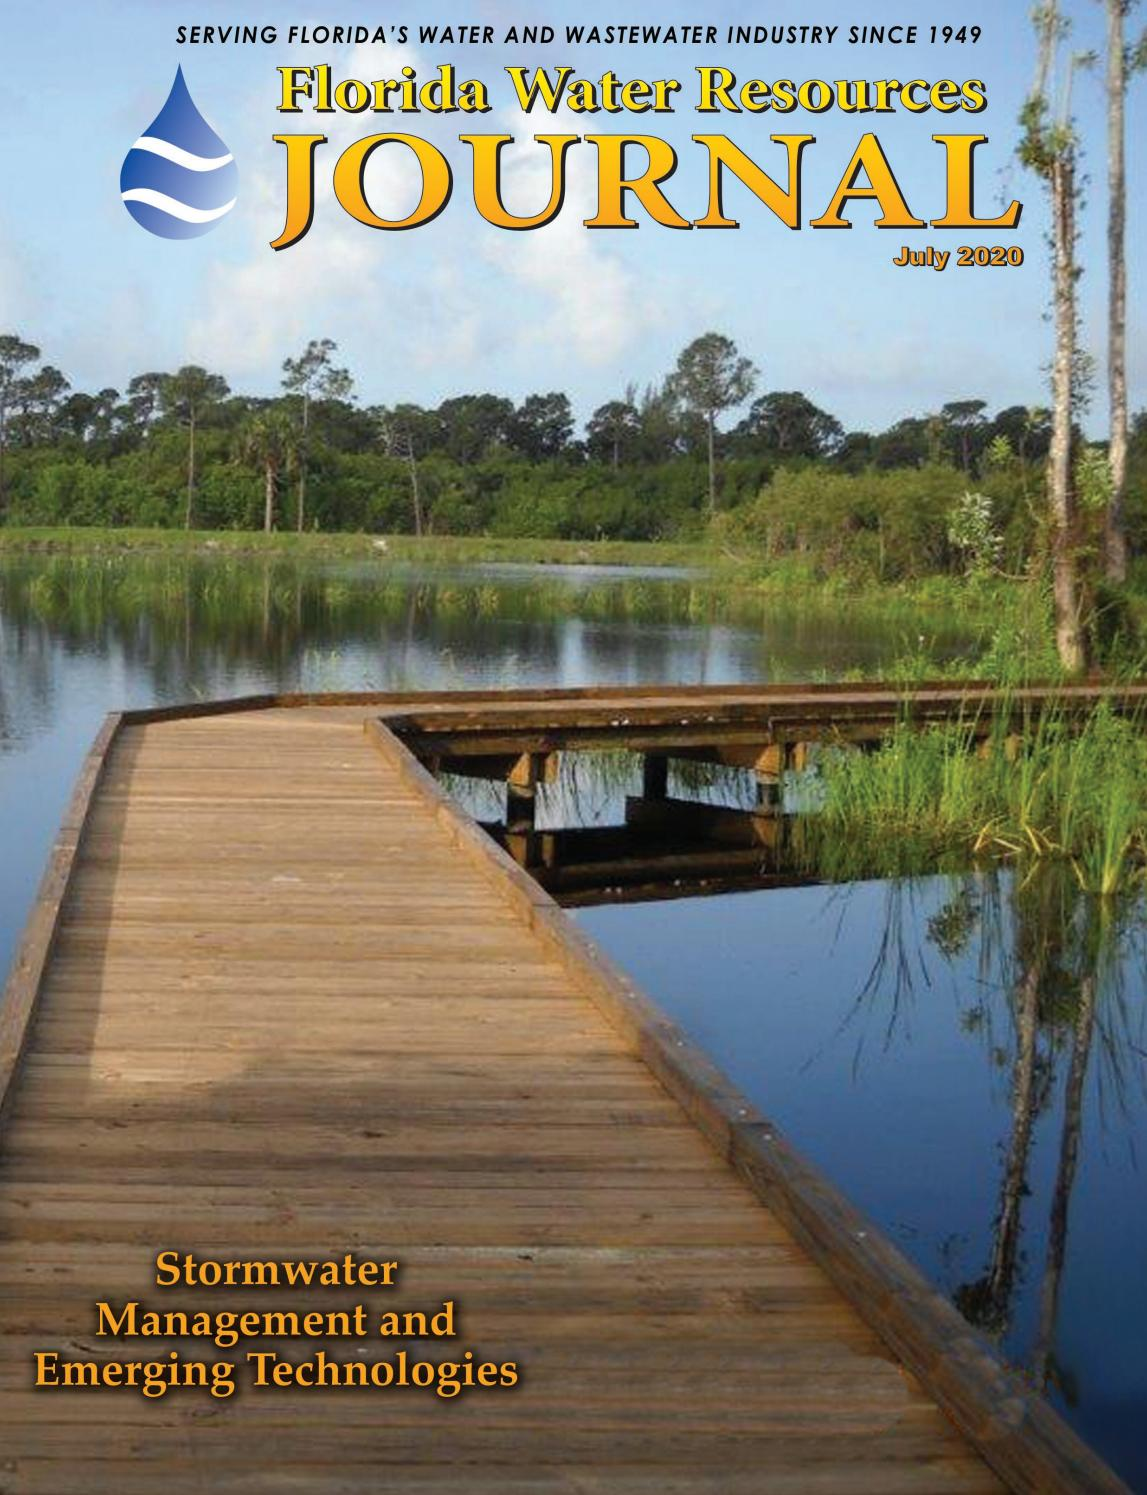 Florida Water Resources Journal - July 2020 by Florida Water Resources  Journal - issuu